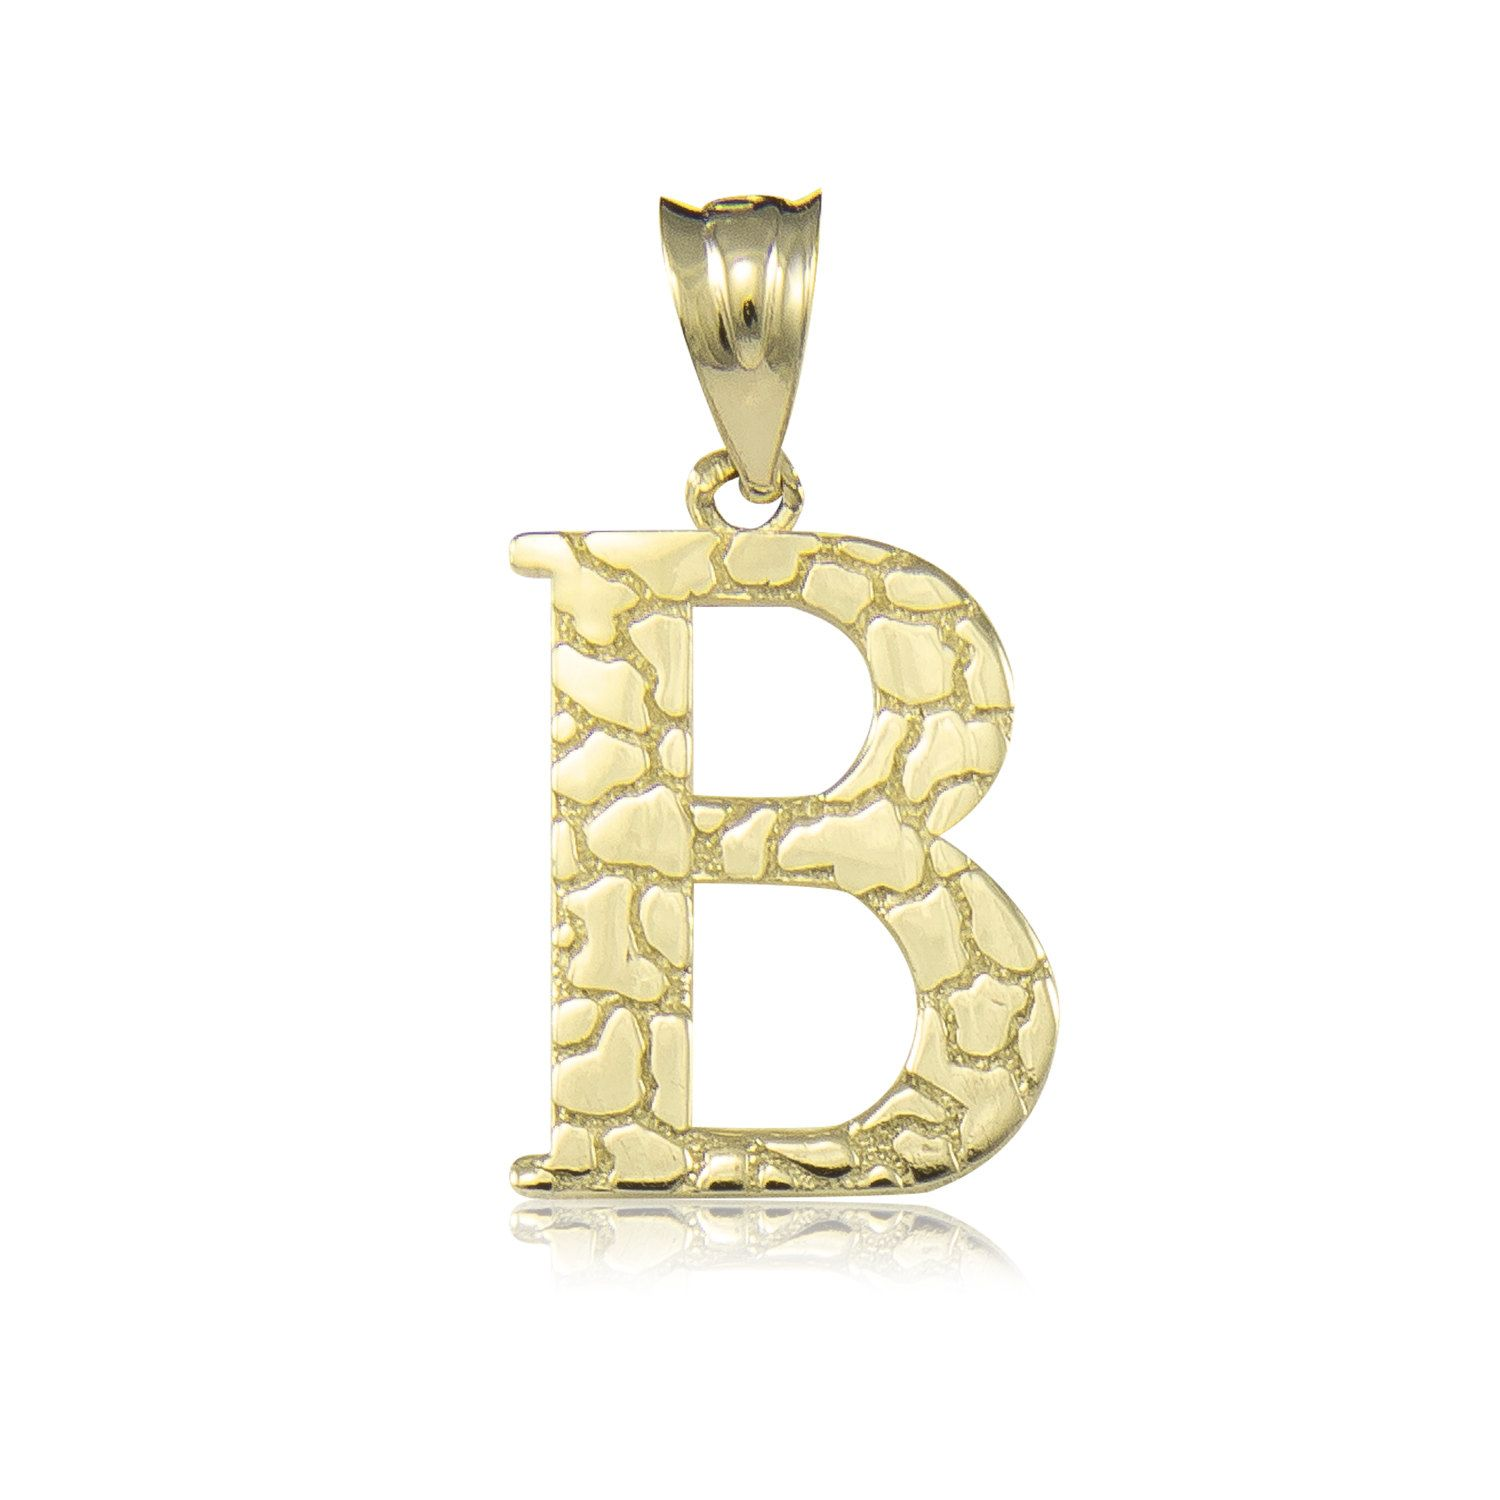 10k Solid Yellow Gold Nugget Initial Letter Pendant Description Material Genuine 10k Solid Yellow Gold Letter Pendants Gold Nugget Custom Initial Jewelry